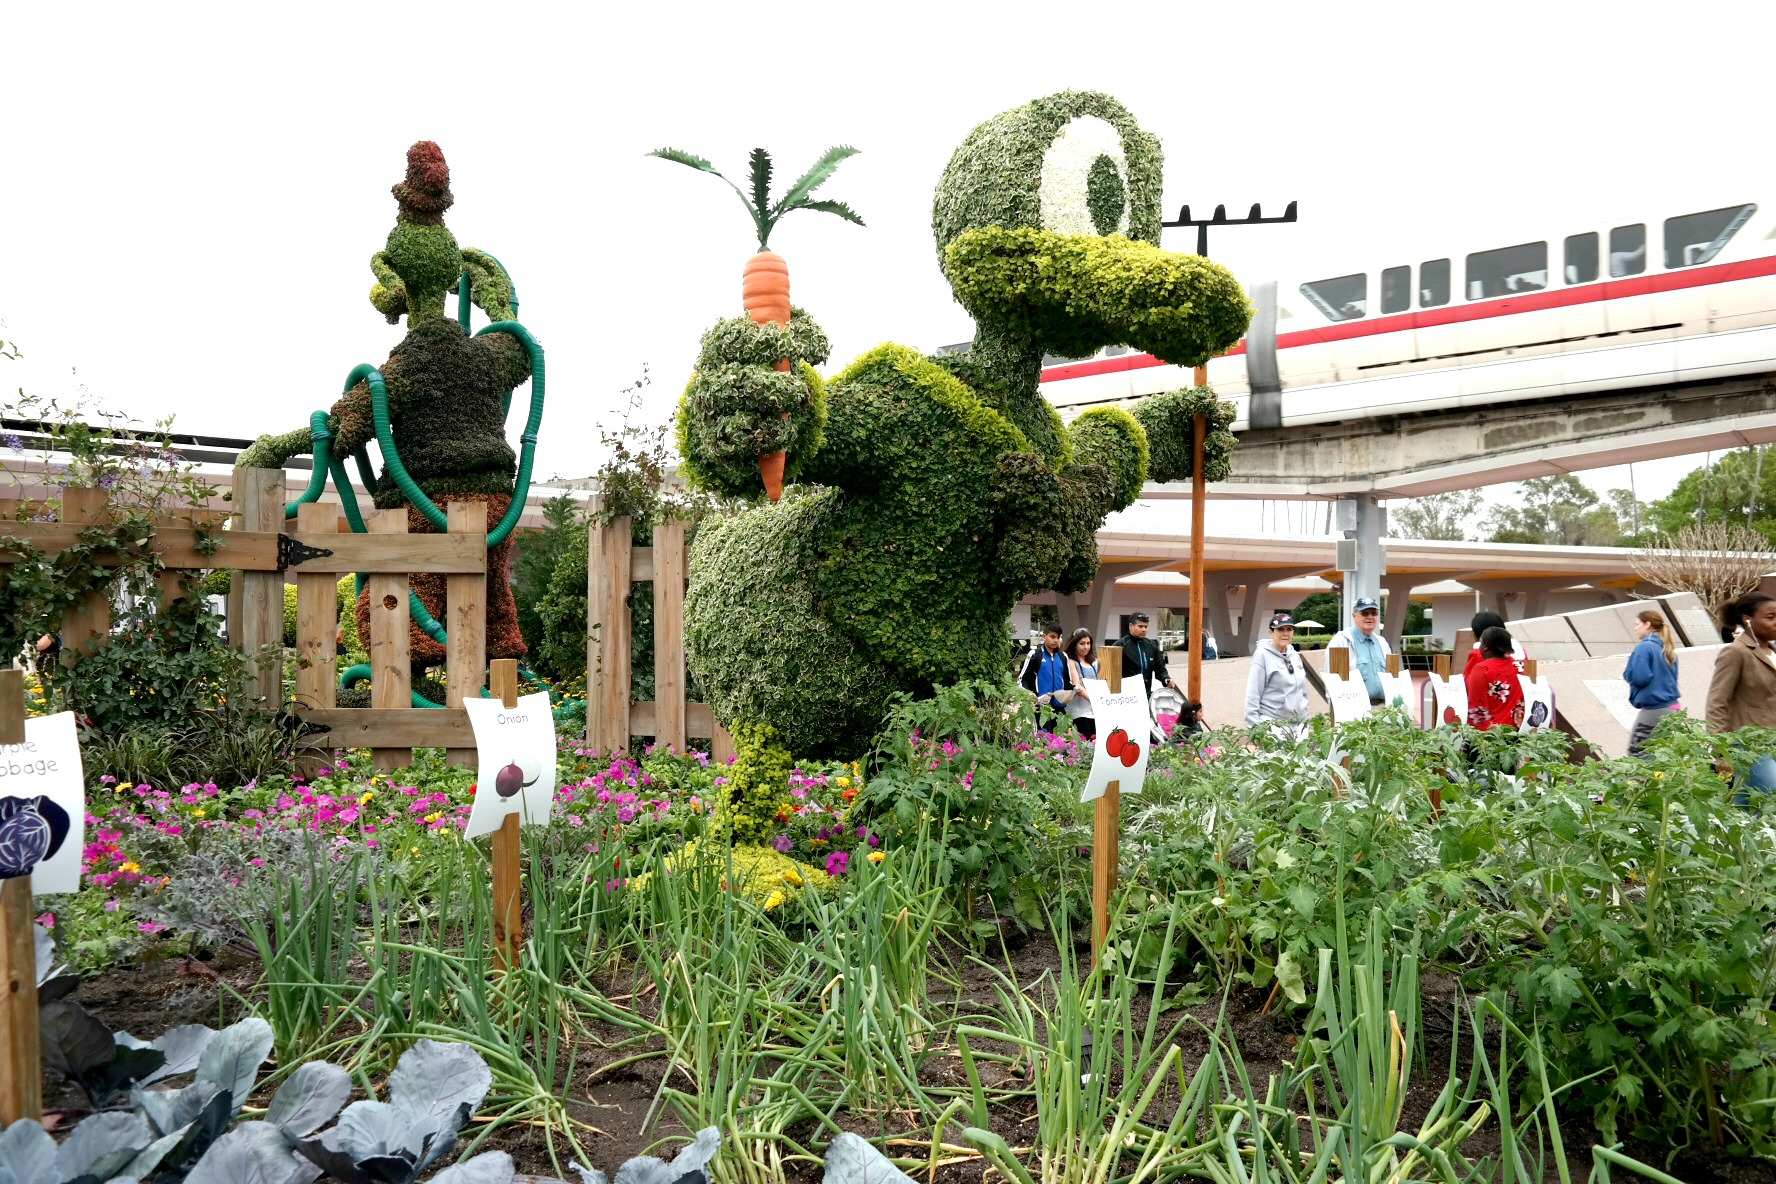 Epcot_Donald_Veggies_Rev.jpg